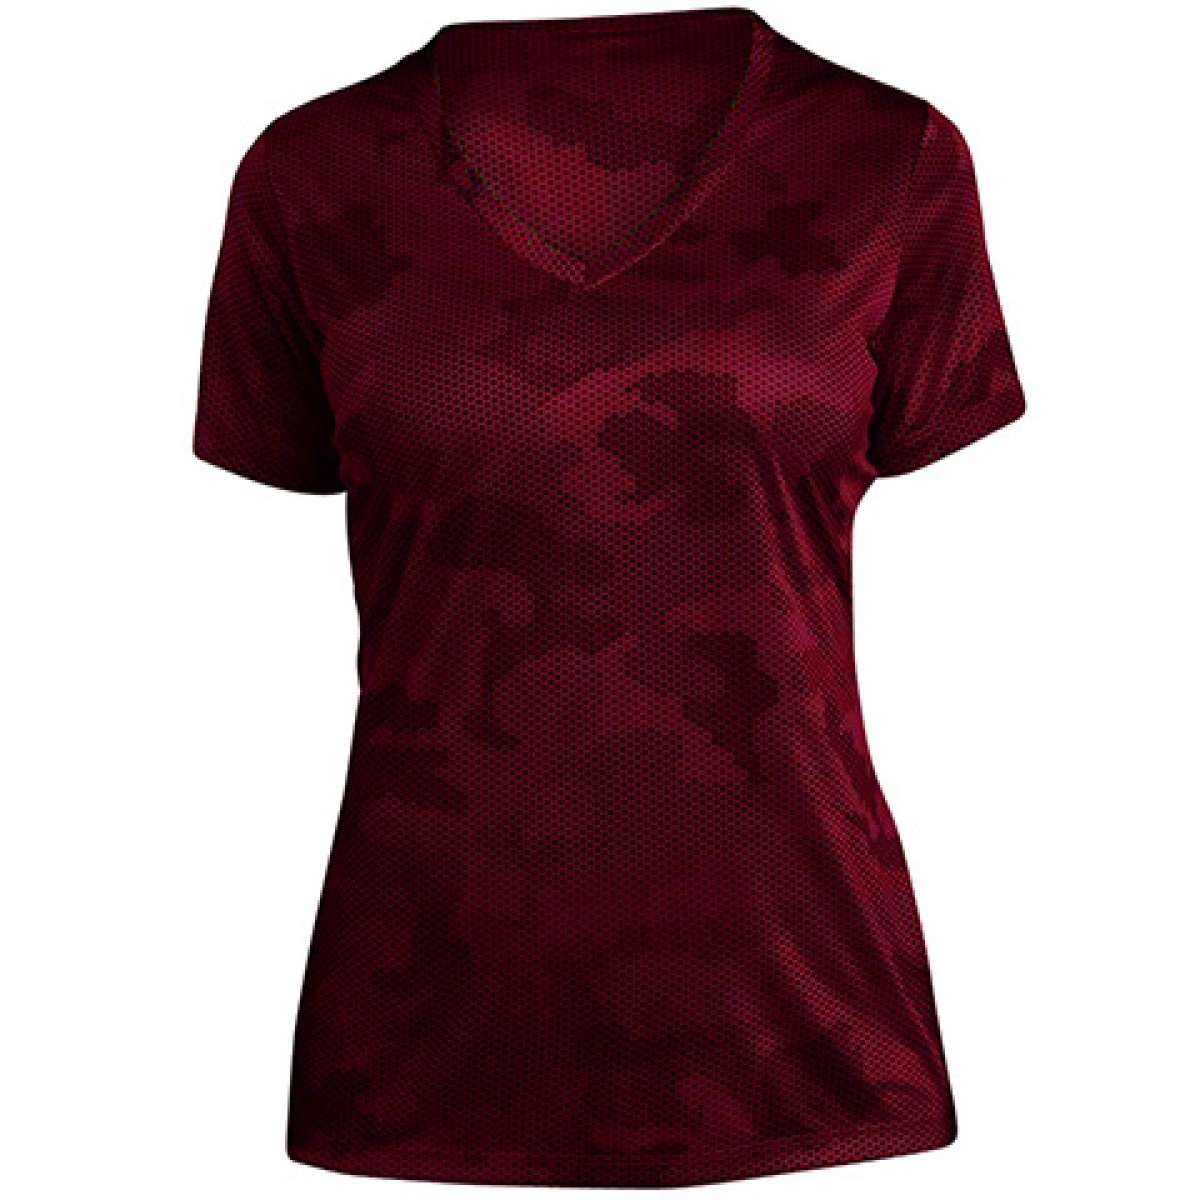 Ladies CamoHex V-Neck Tee-Red-2XL